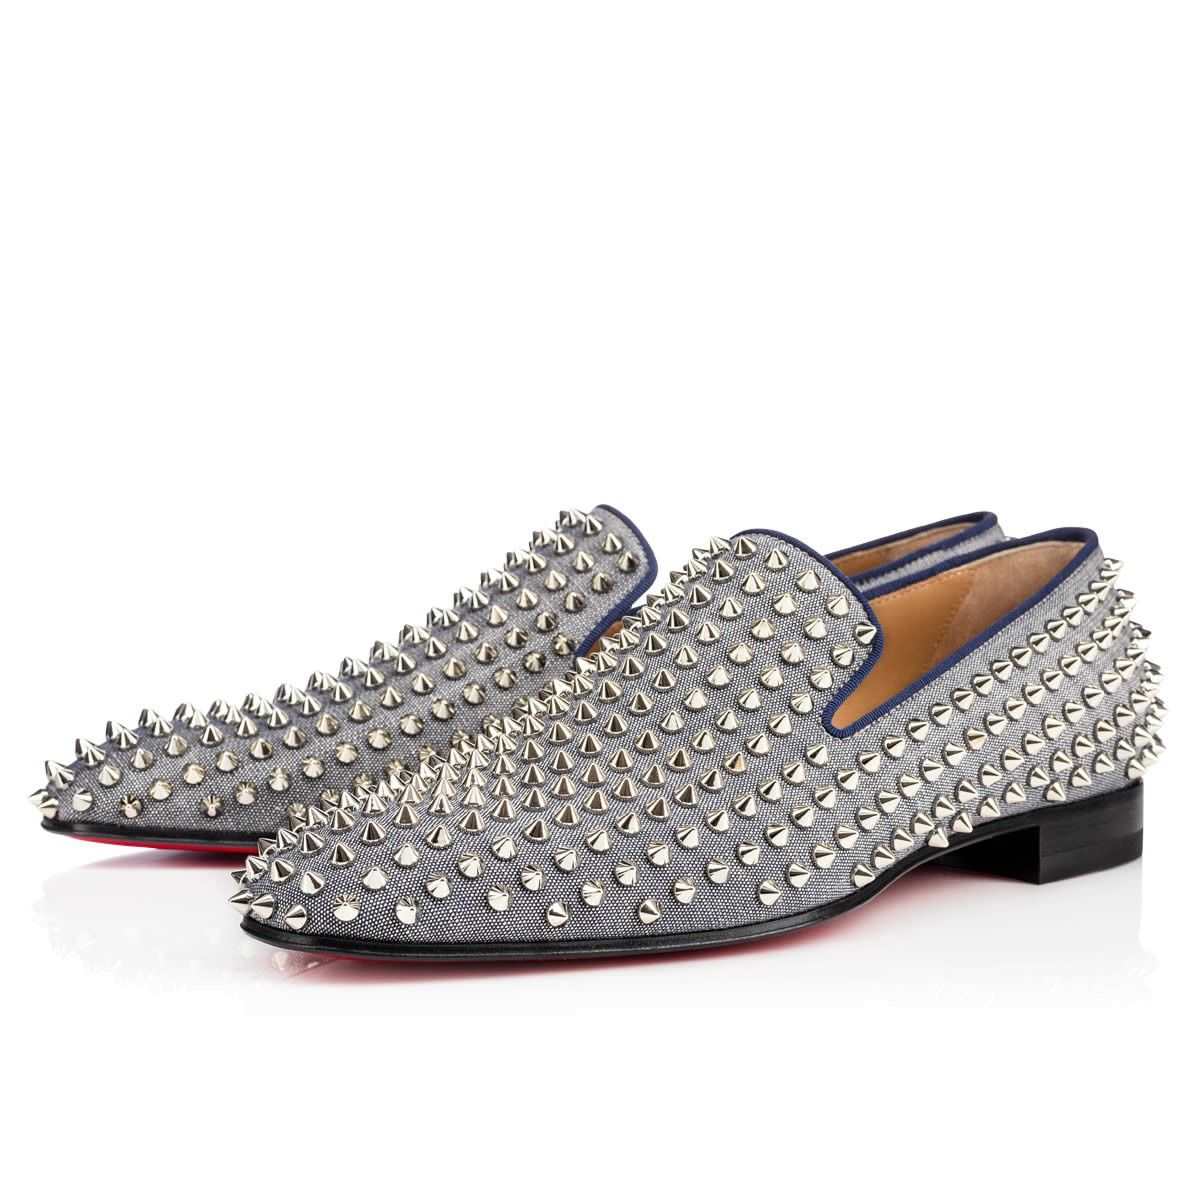 shoes dandelion spikes flat christian louboutin shoes rh pinterest com